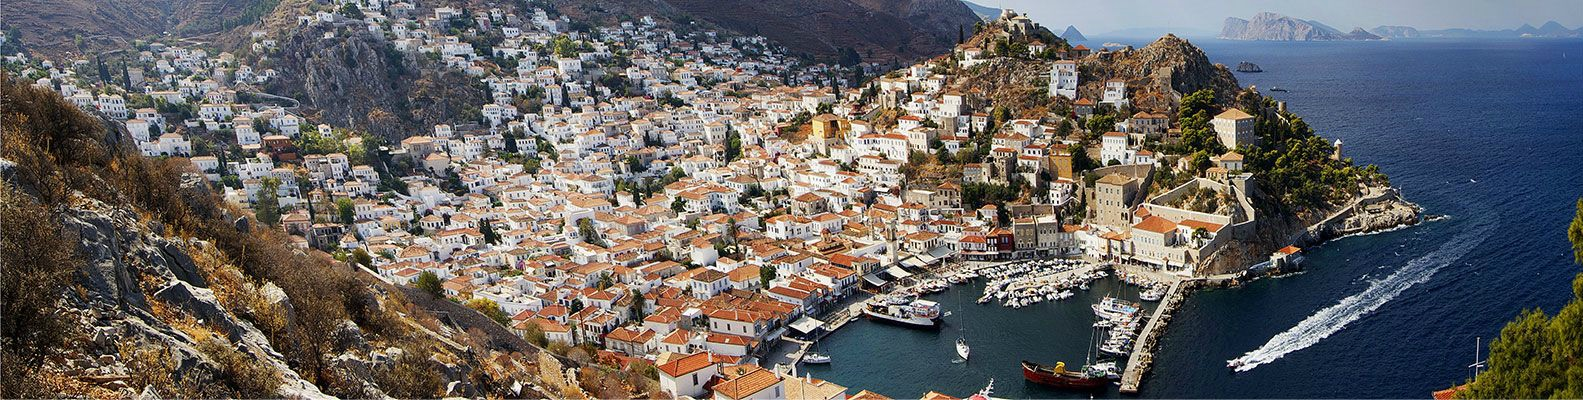 Hydra Town, Port, Sailing in Greece